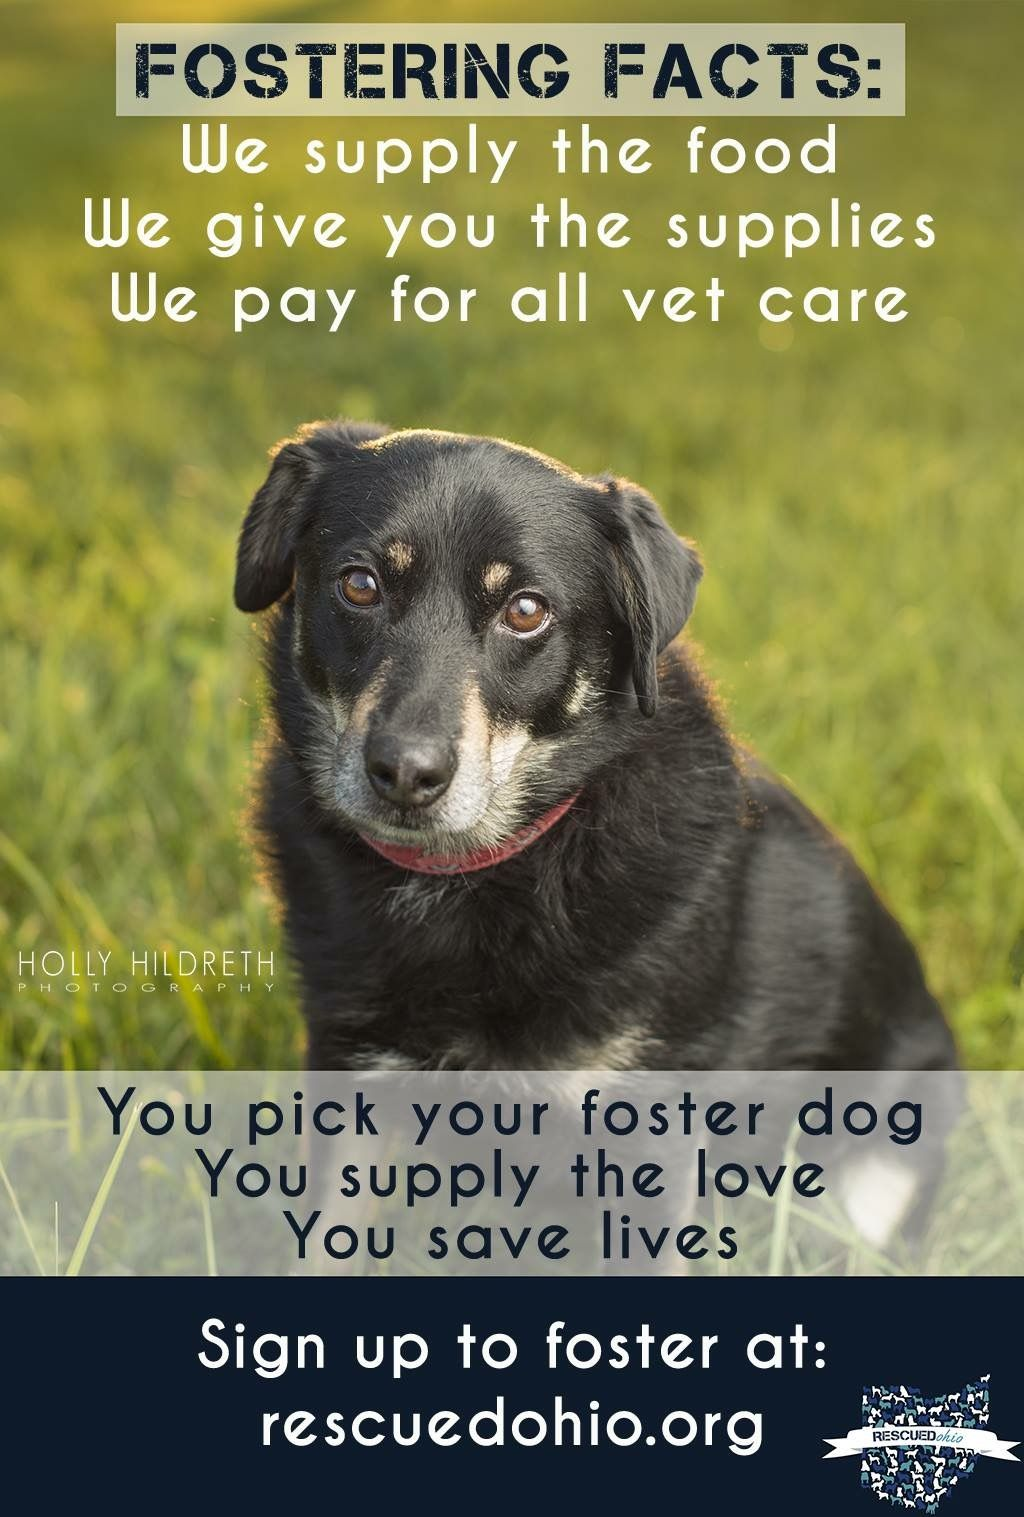 Fostering Saves Lives Sign Up At Rescuedohio Org To Start Fostering With Us Foster Dog Dogs The Fosters